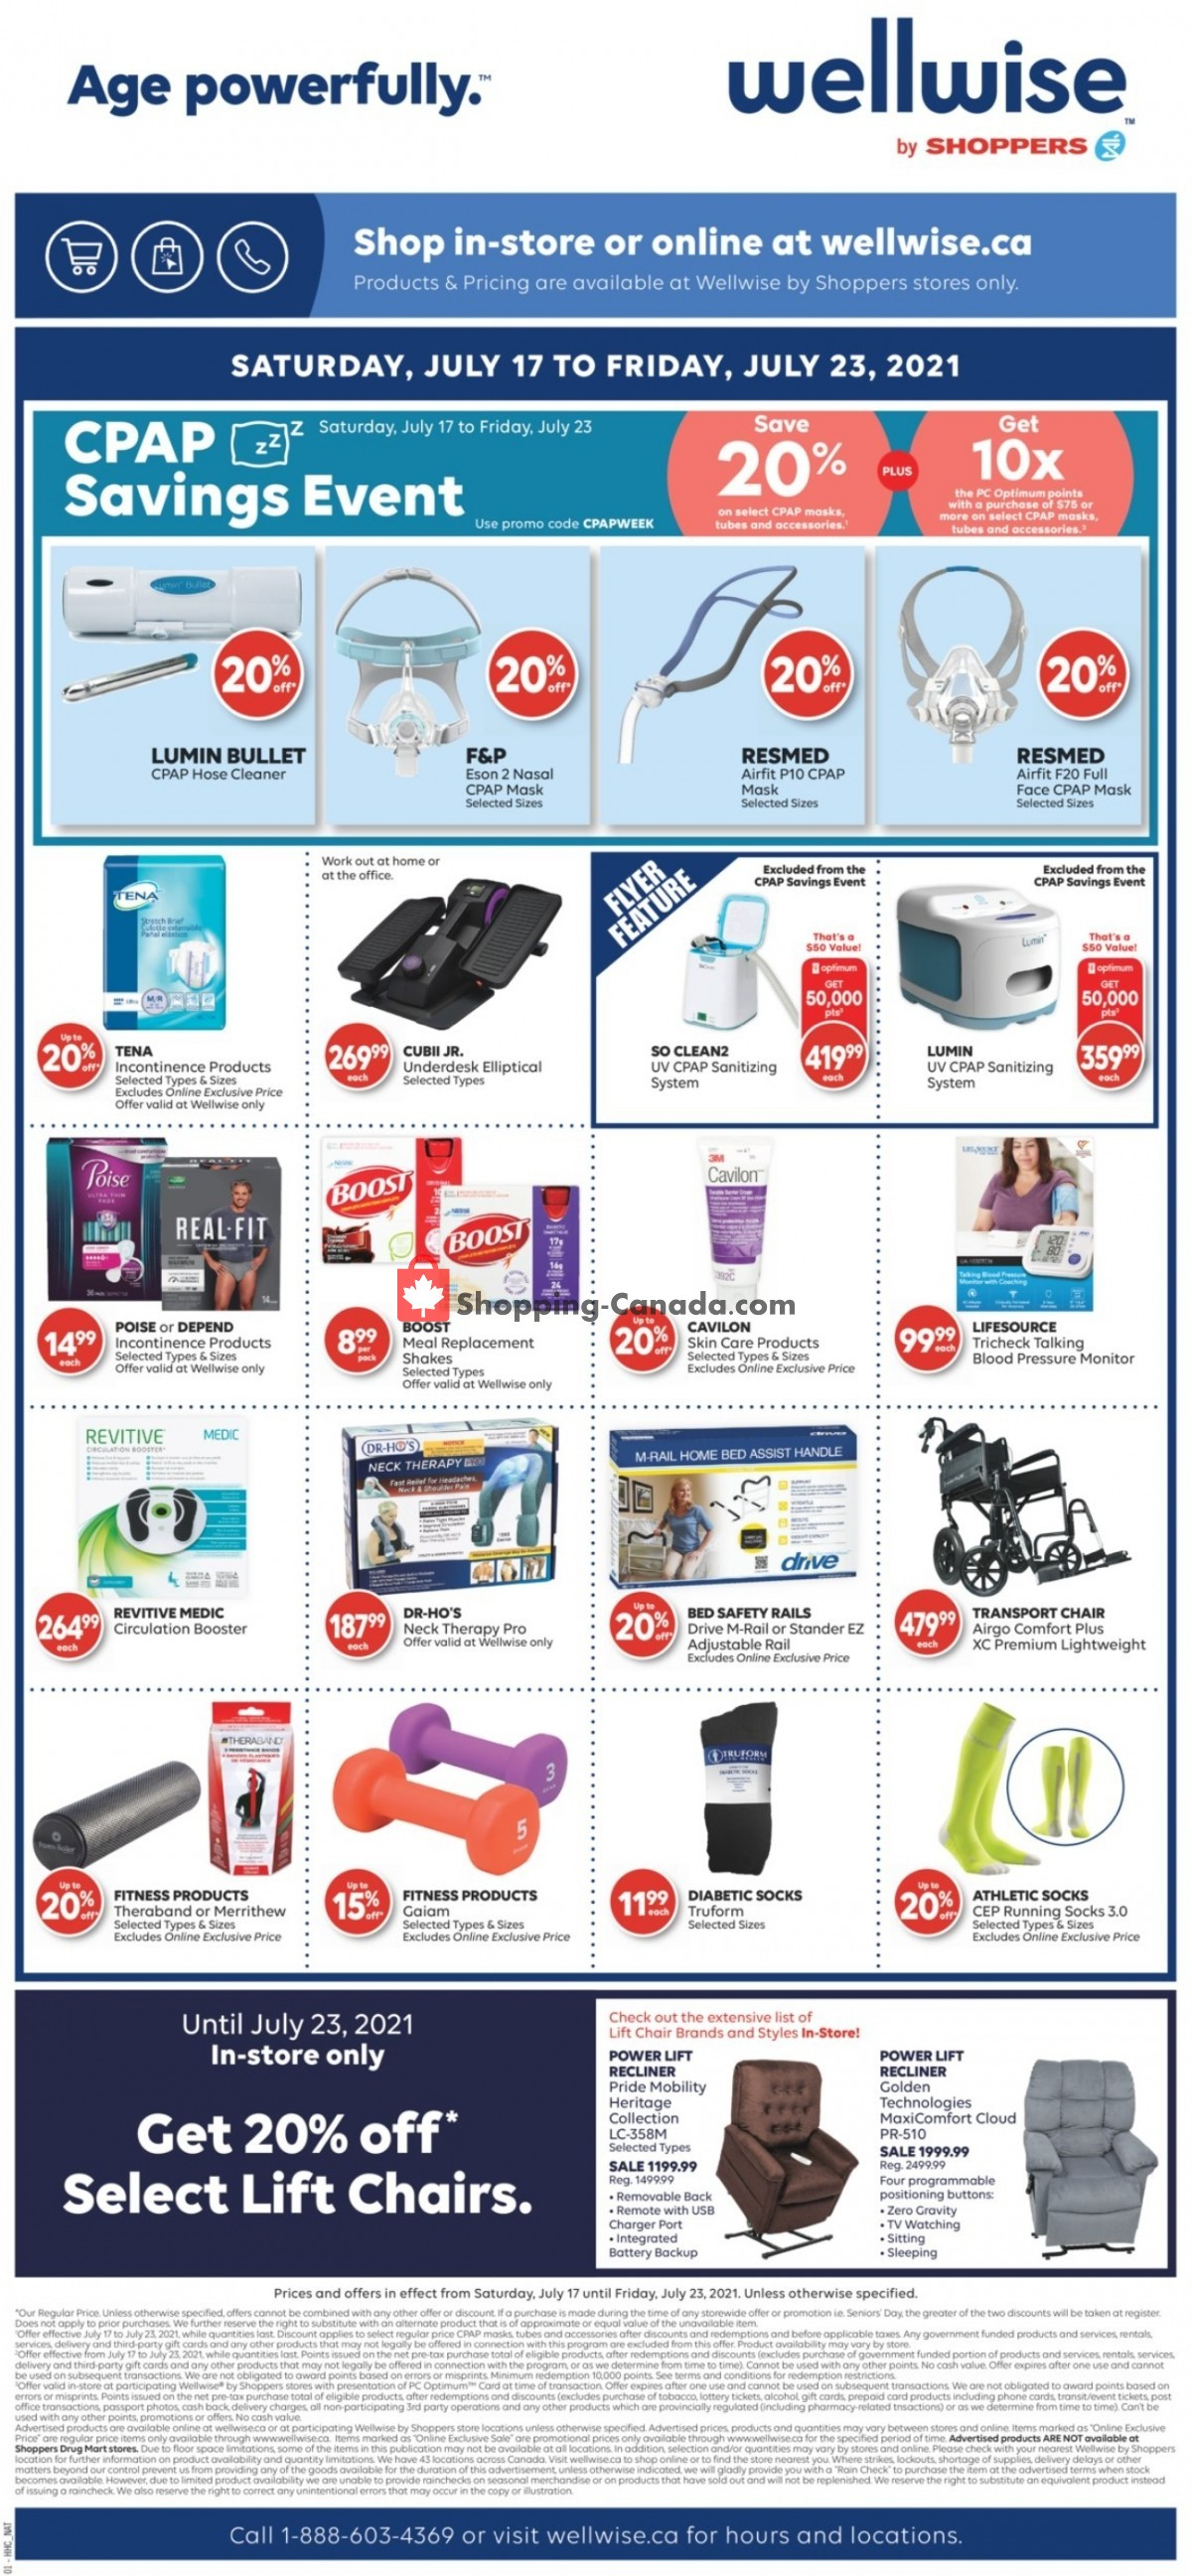 Flyer WellWise by Shoppers Drug Mart Canada - from Saturday July 17, 2021 to Friday July 23, 2021